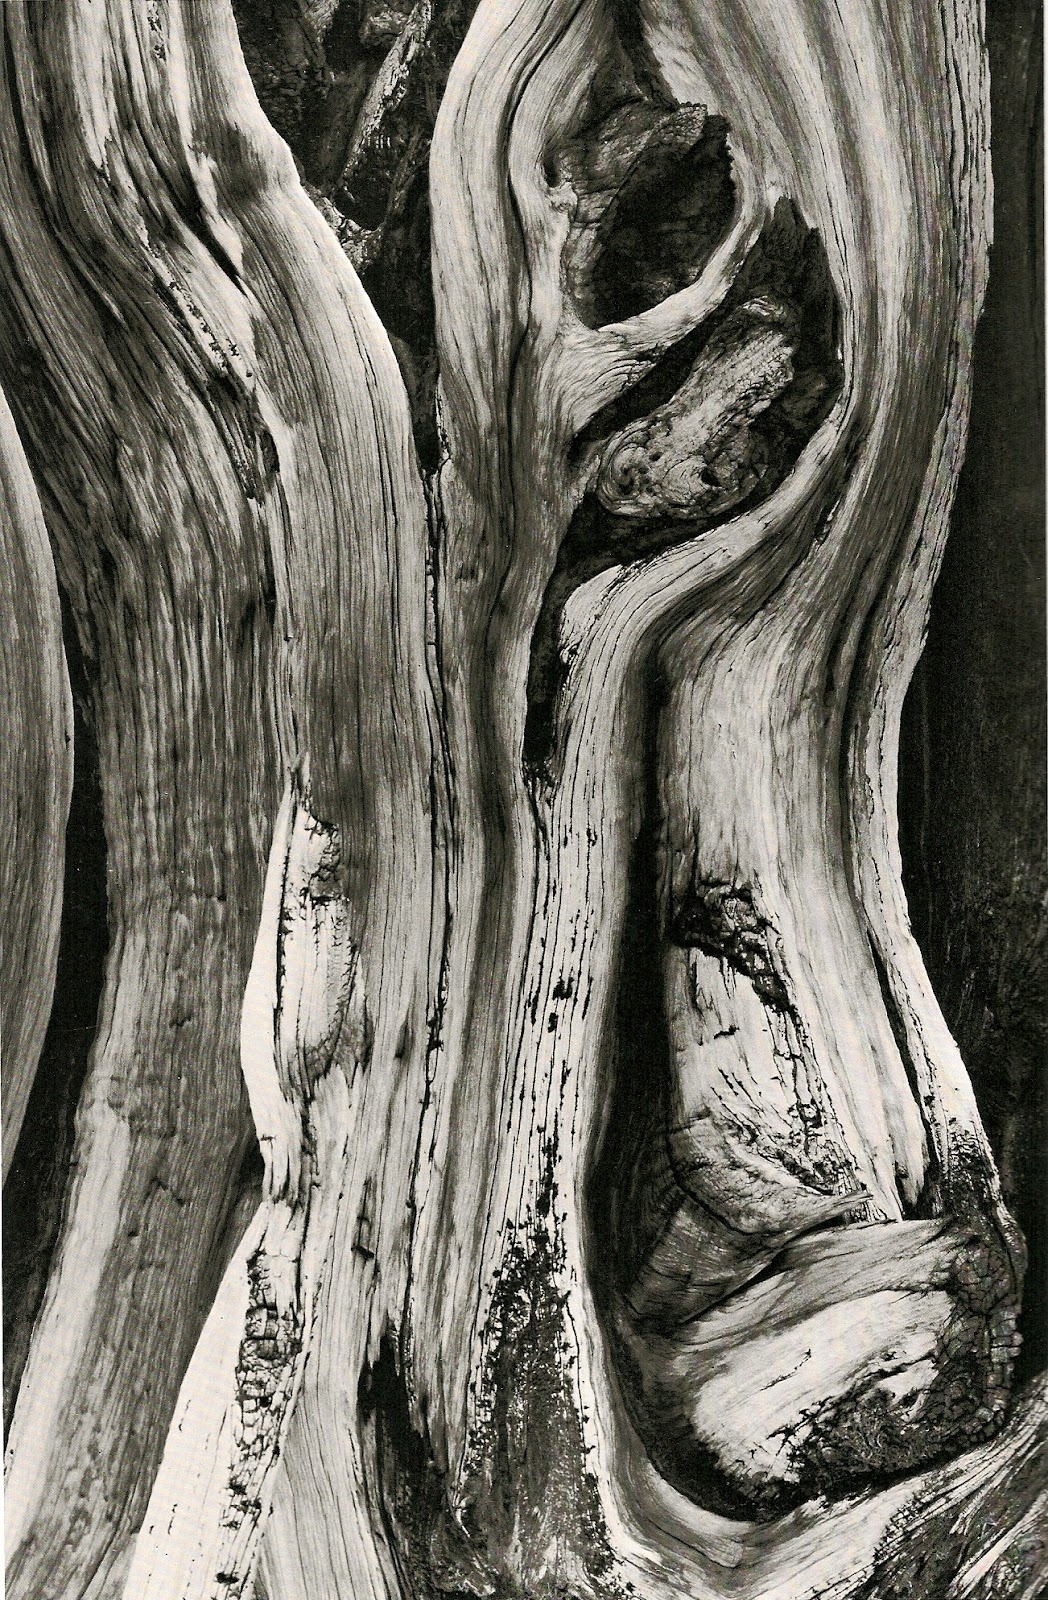 GC Photography: Minor White: Abstract b&w still life